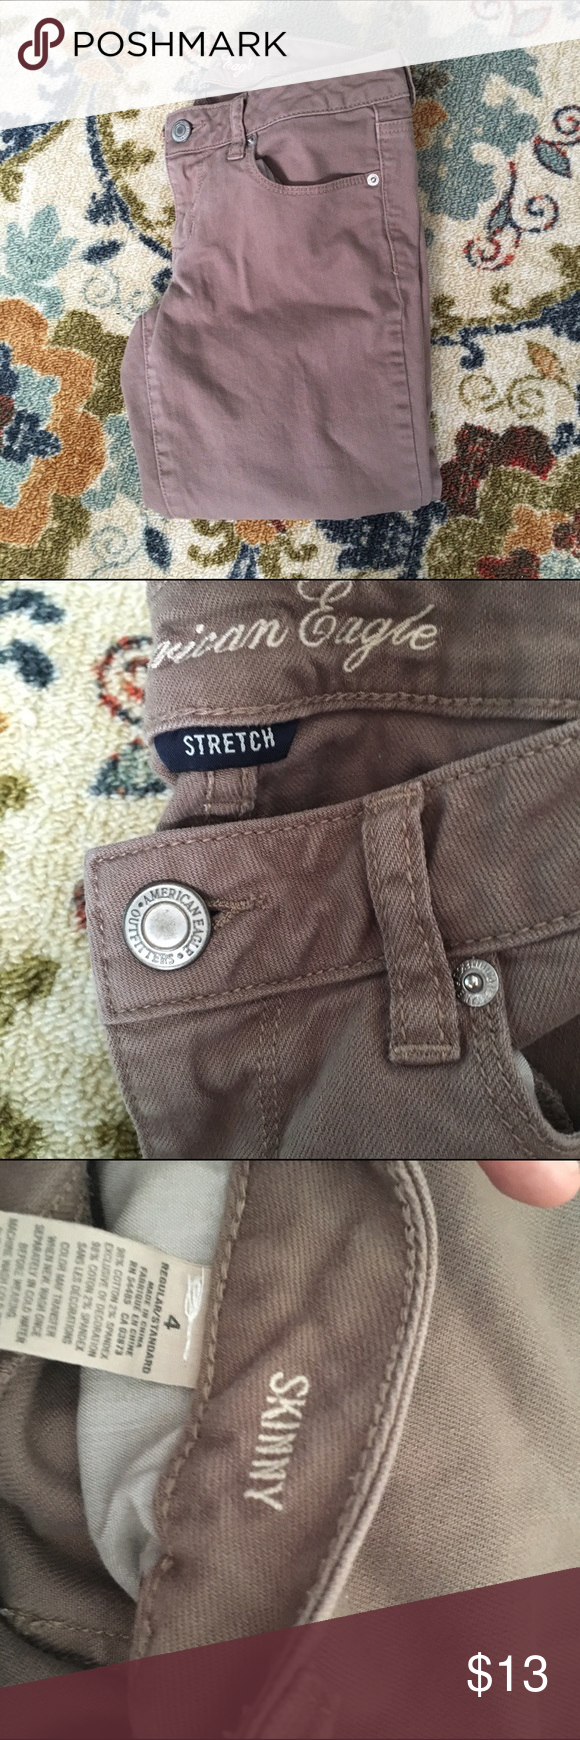 *Reposh* Khaki American Eagle jeans Bought these from another posher but they just didn't fit right. They are in excellent condition and I never wore them. Size 4 skinny jeans American Eagle Outfitters Pants Skinny